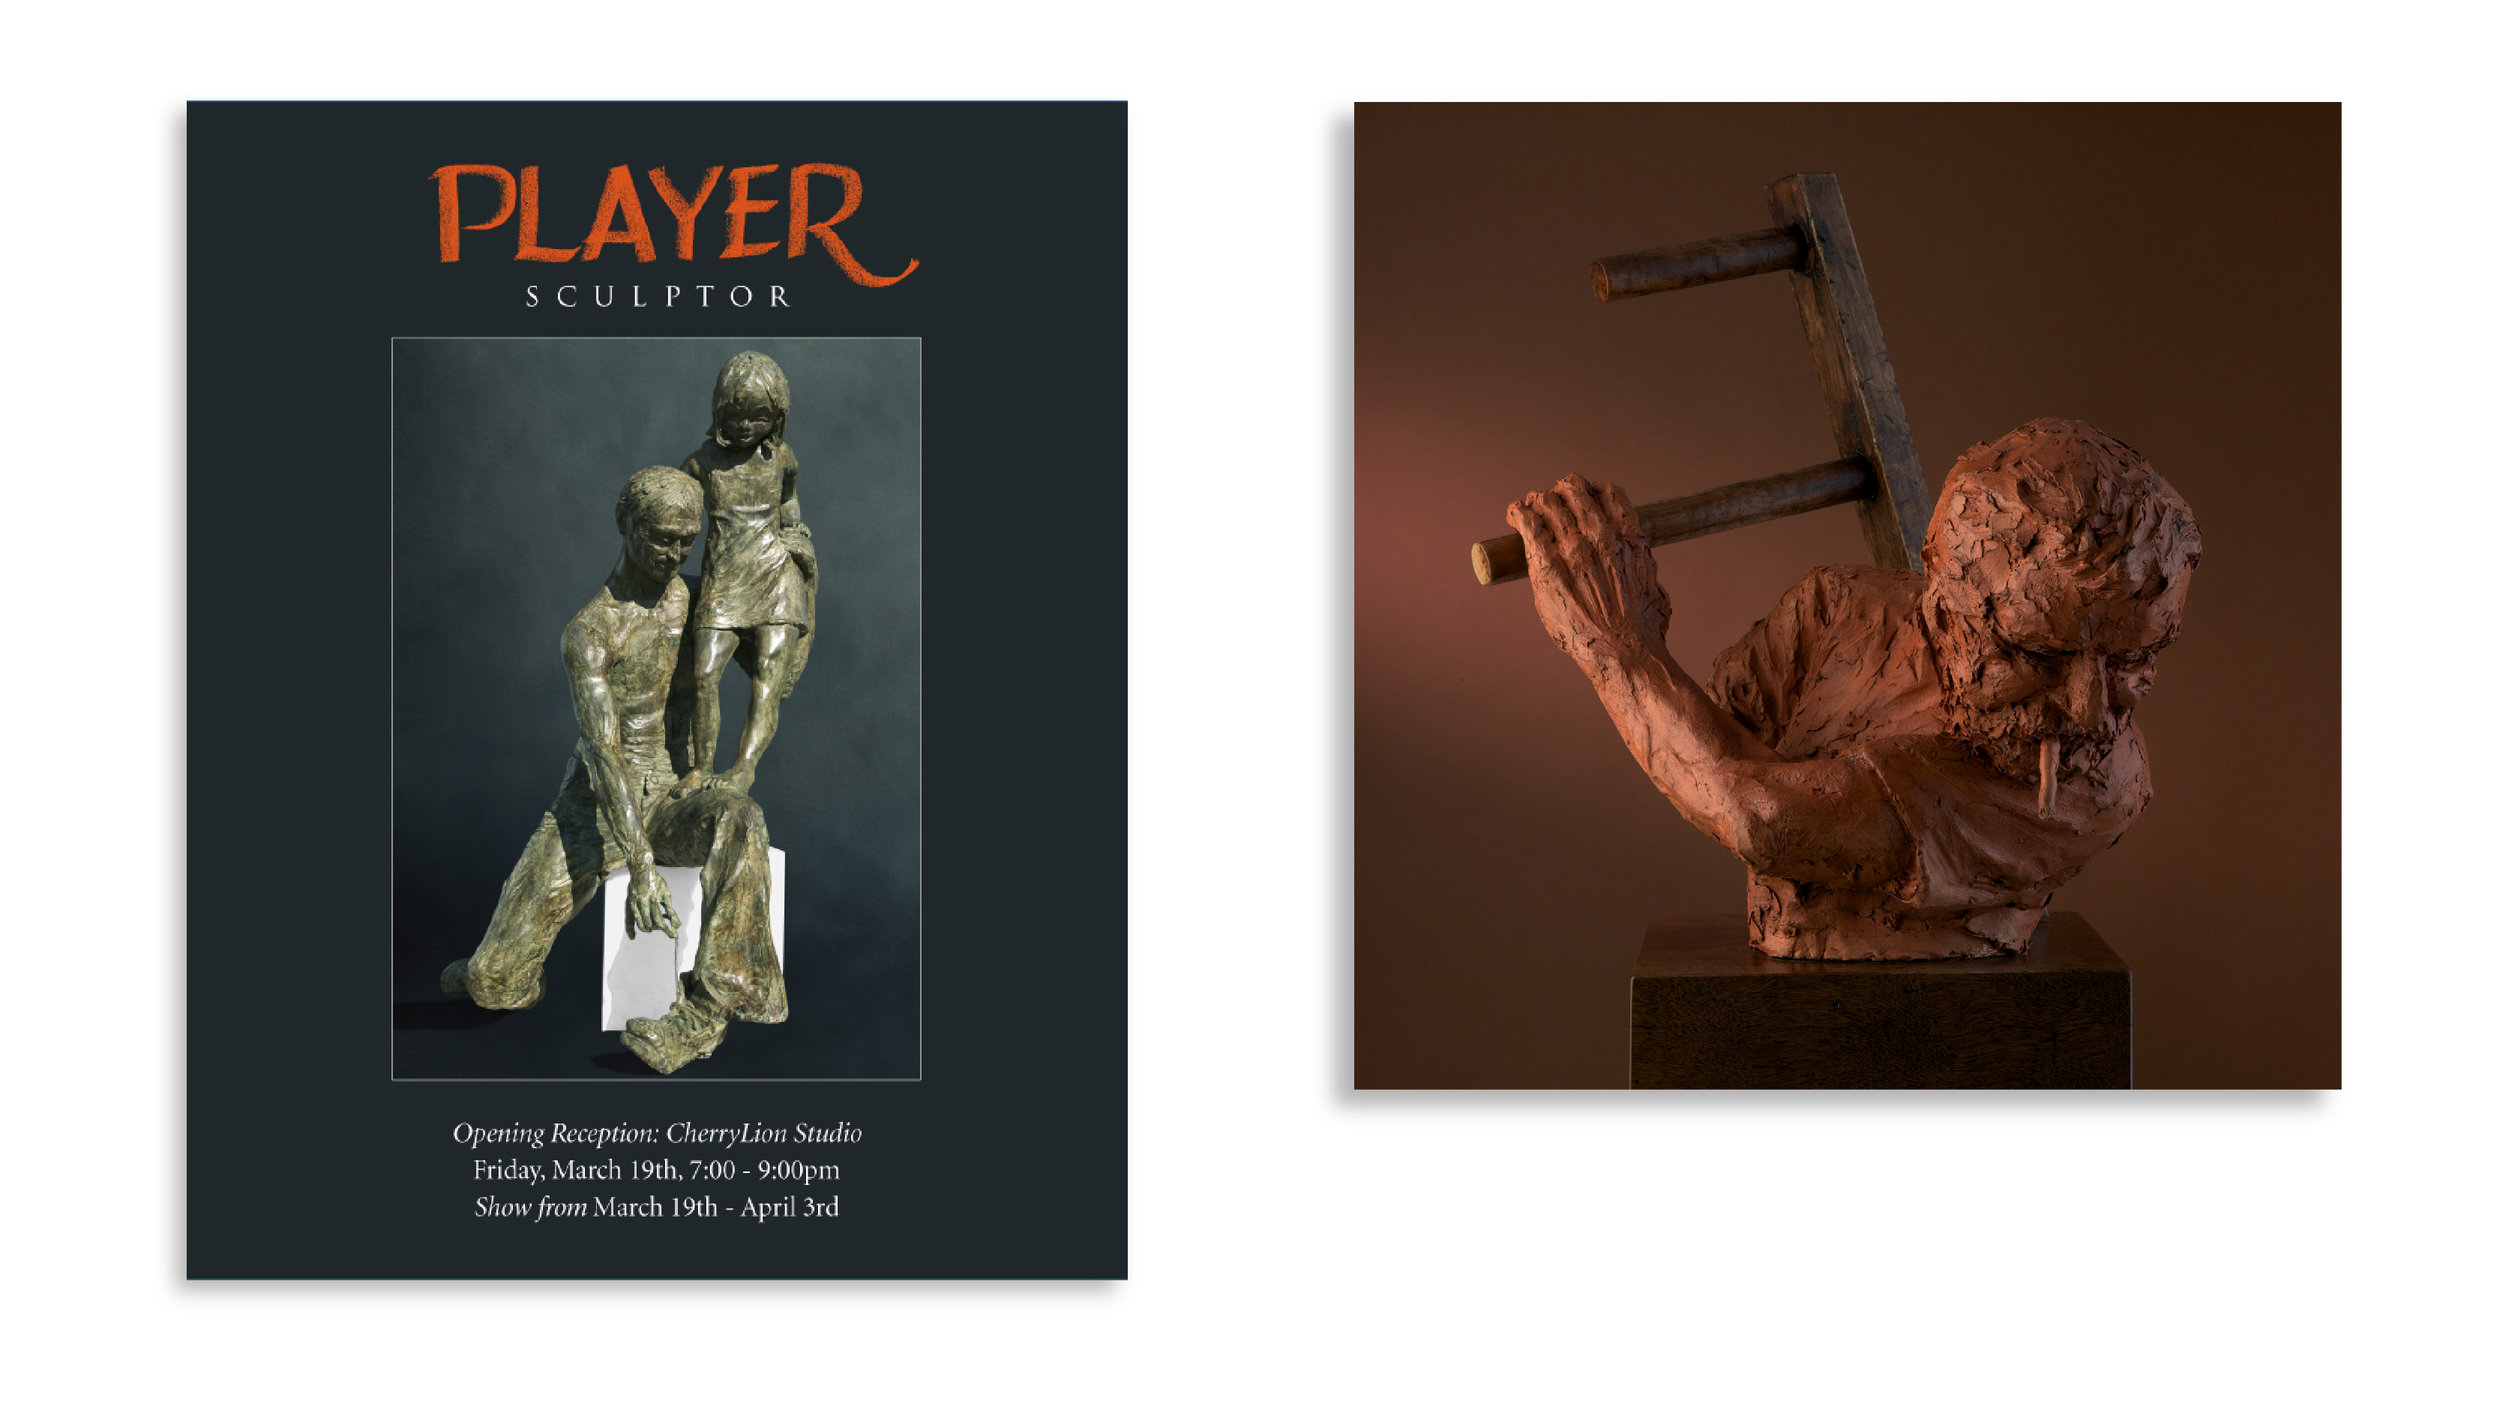 The above represent a solo show poster and a photograph of Hugh on a Ladder. PLAY helped to secure famed photographer, Parish Kohanim for both these photographs and helped to art direct both photo-shoots.